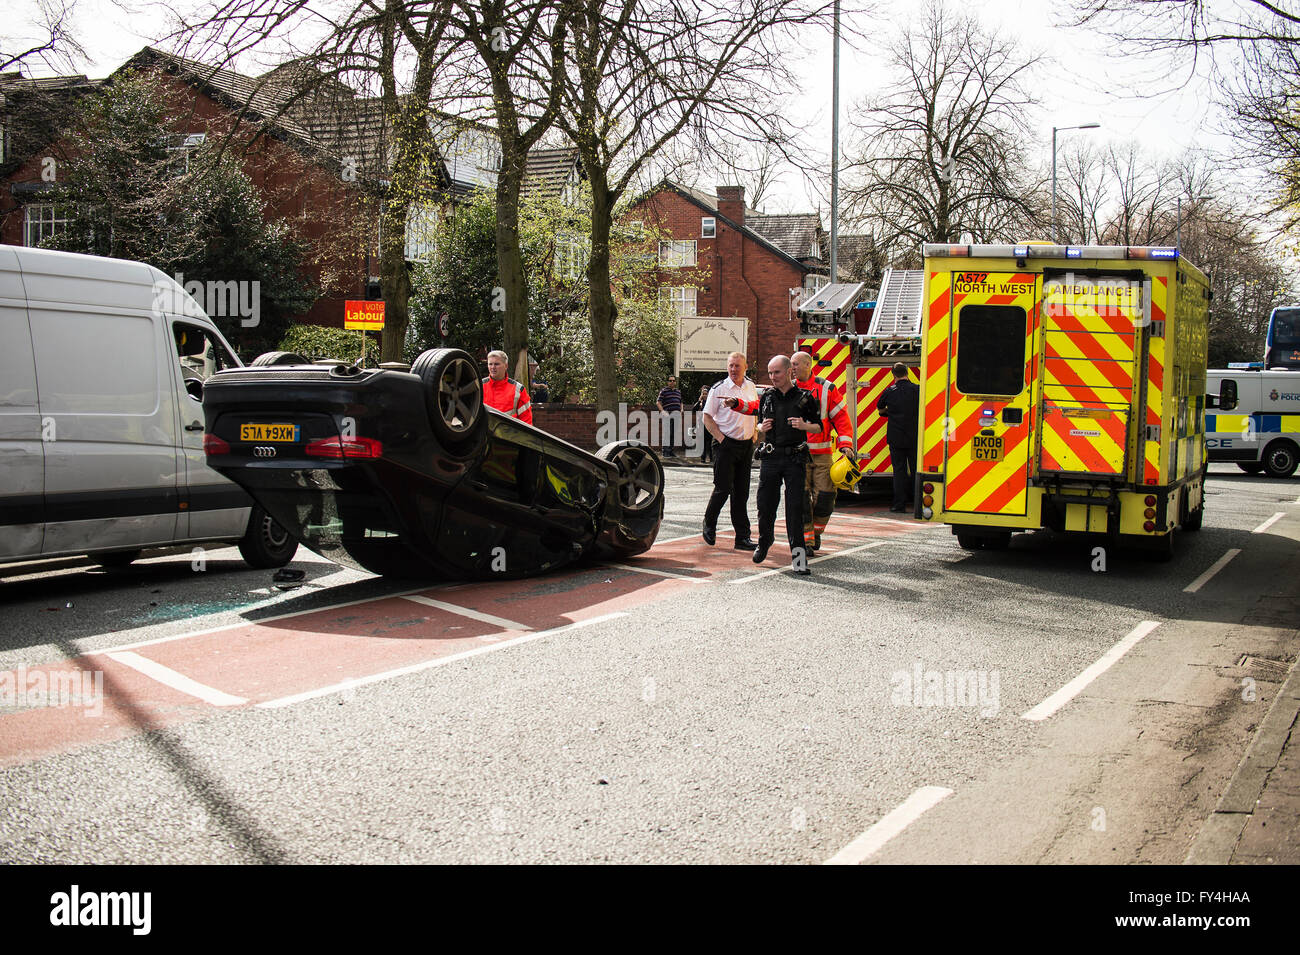 Black Audi car upside down, white transit, labour party banner, ambulance, policeman, firemen, fire engine, police Stock Photo